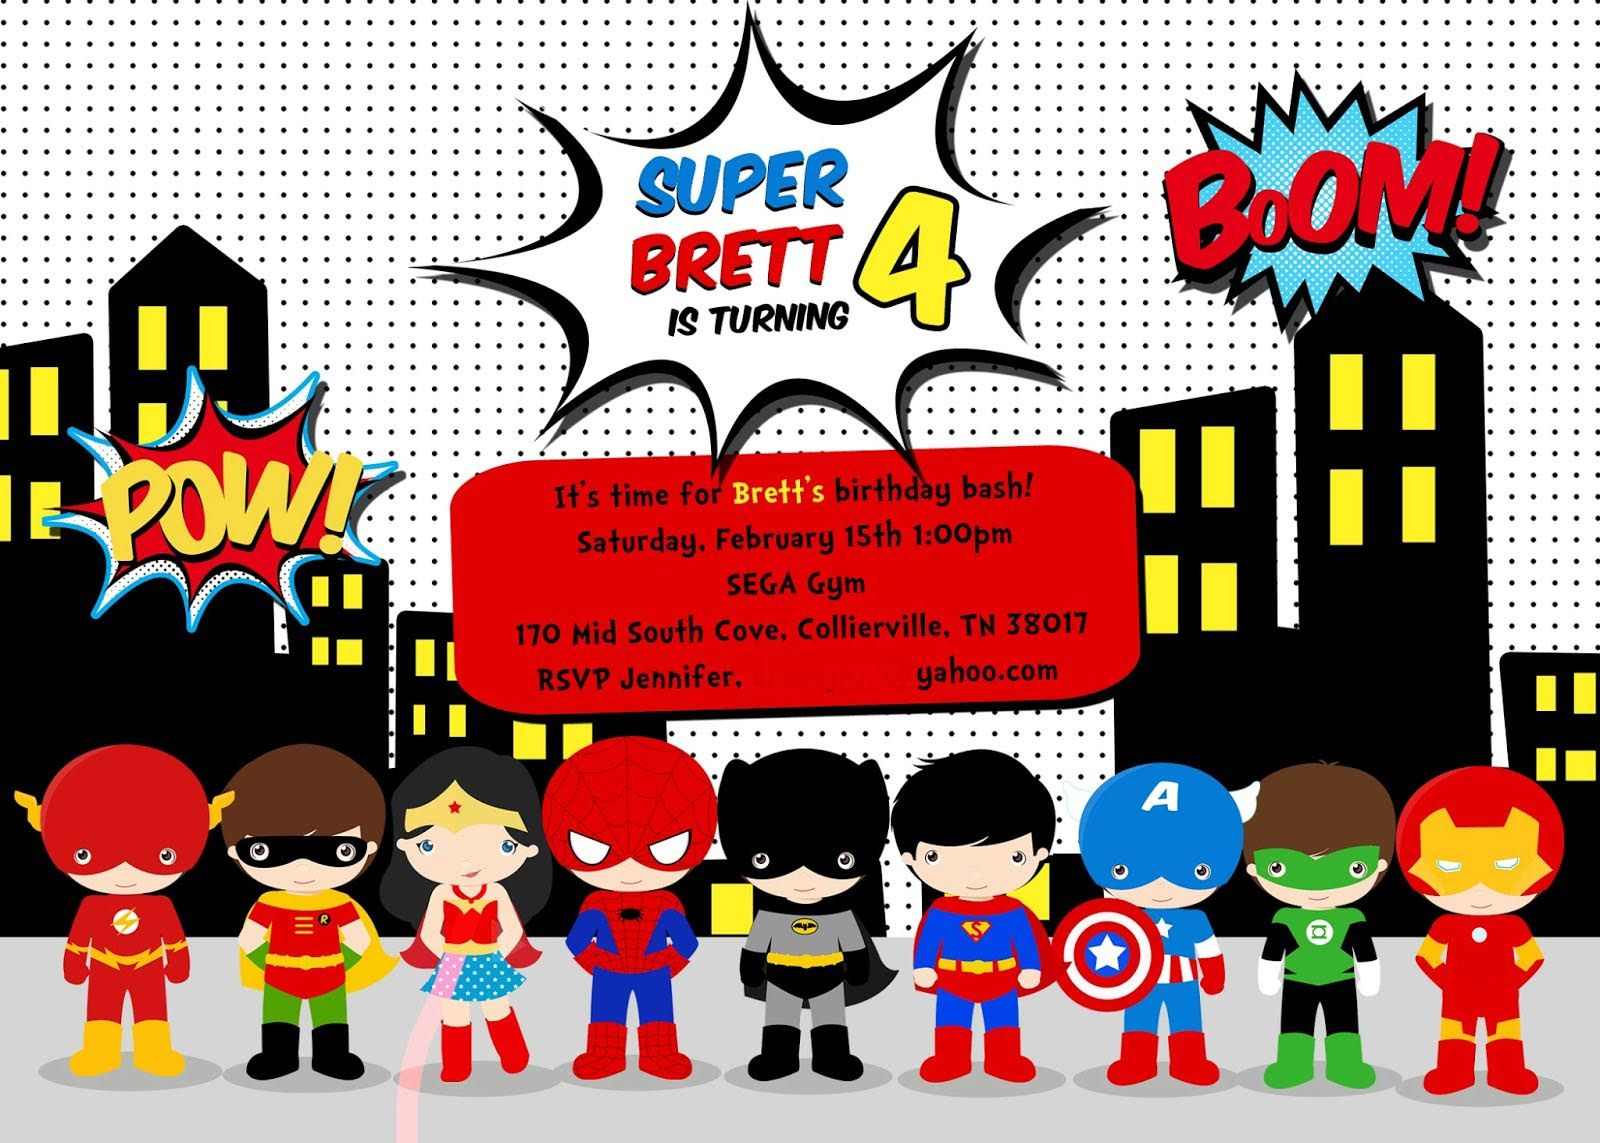 Free Superhero Birthday Party Invitation Templates Hom Superhero Birthday Invitations Free Superhero Birthday Invitations Birthday Party Invitation Templates